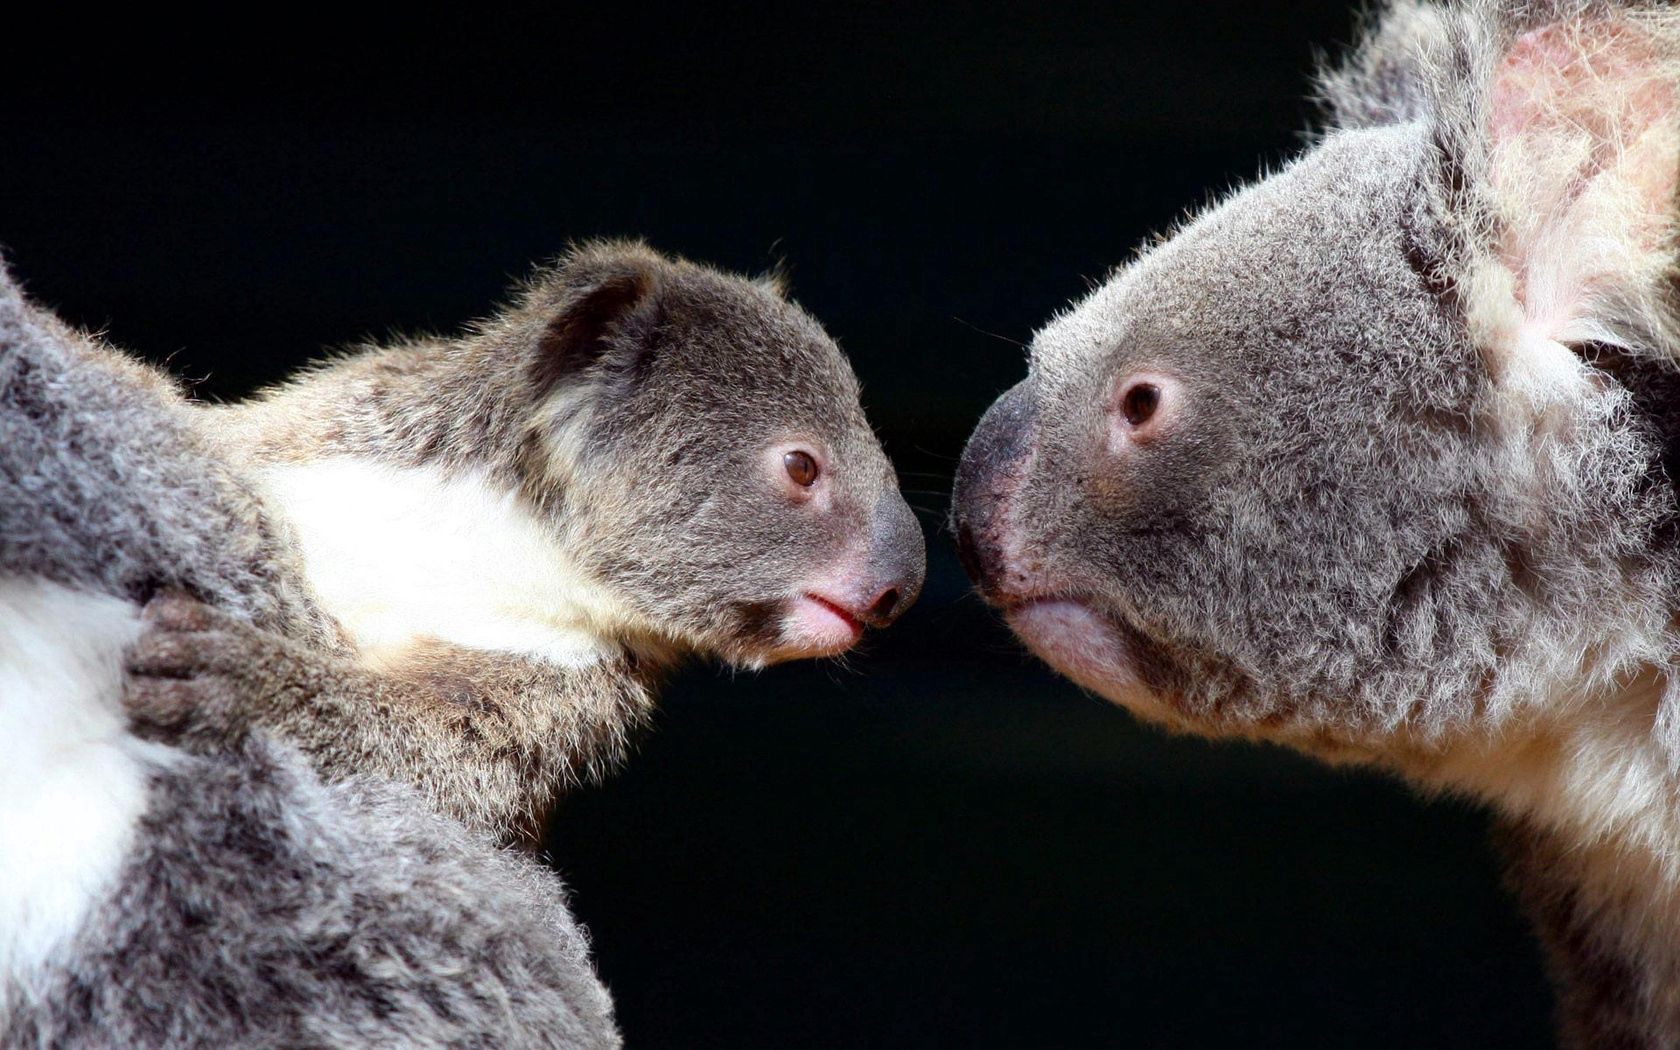 70861 download wallpaper Animals, Koalas, Couple, Pair, Tenderness screensavers and pictures for free